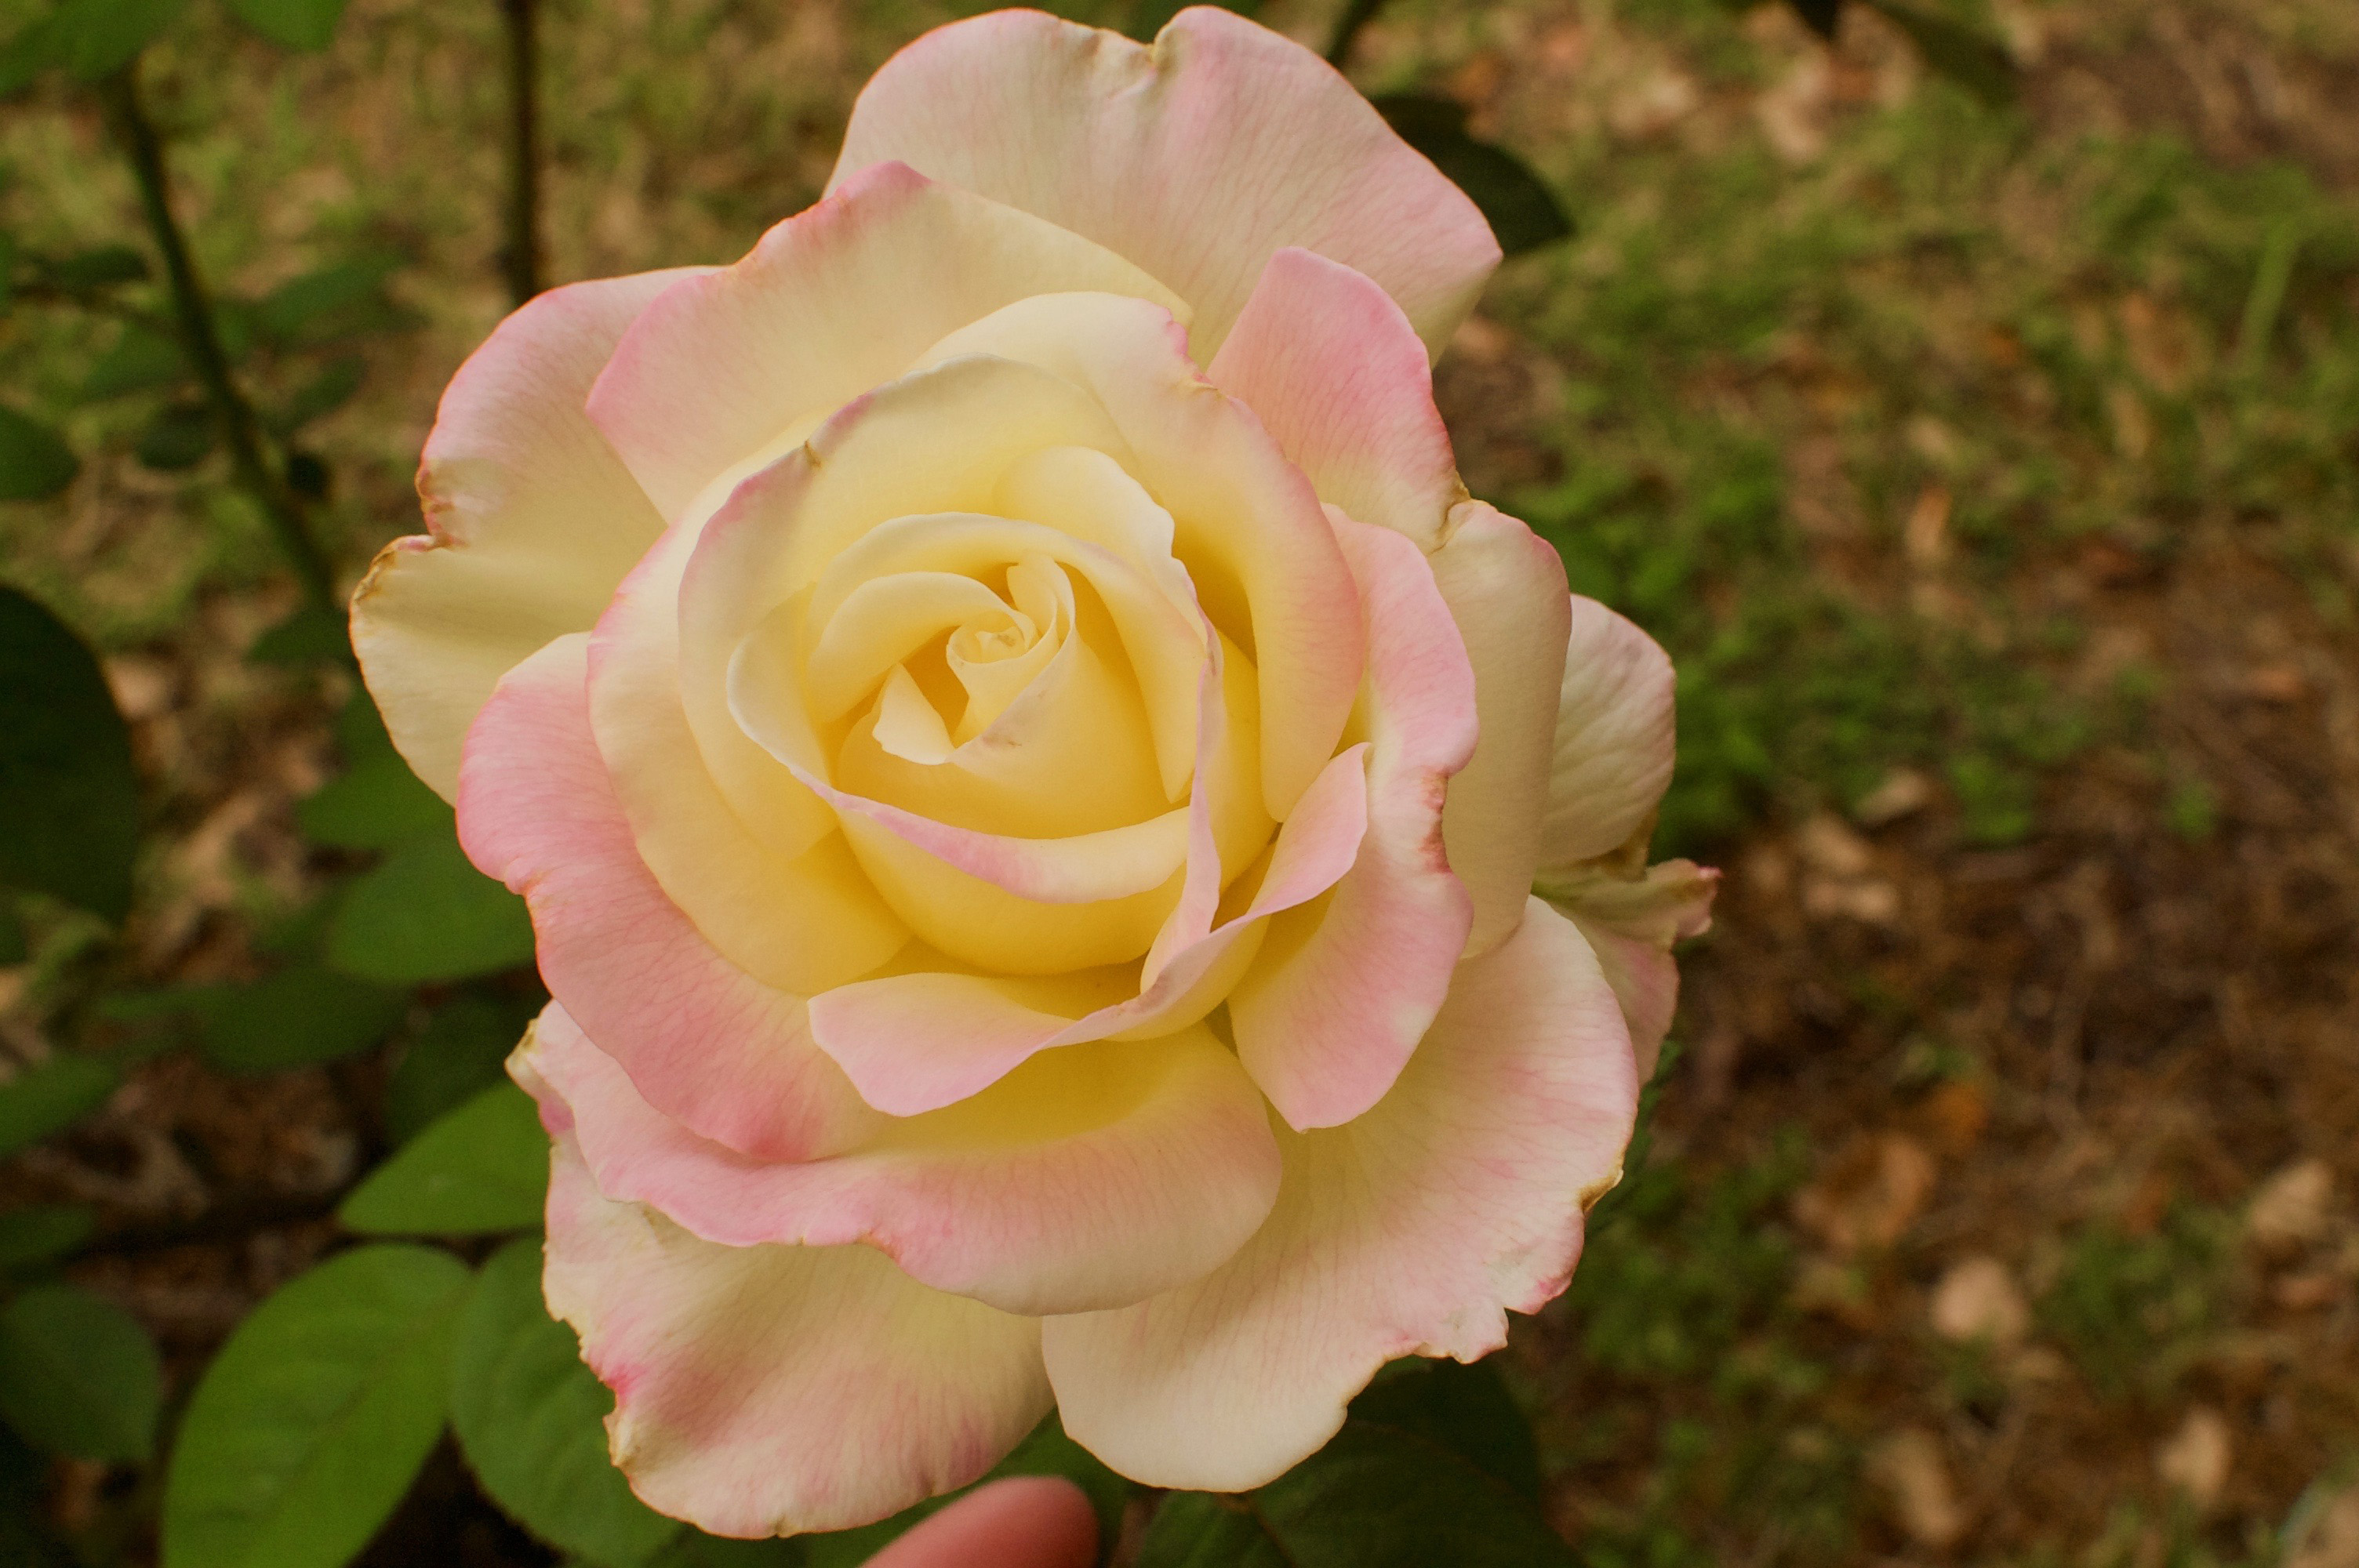 How I Finally Identified the Mystery Rose Bush in My Yard